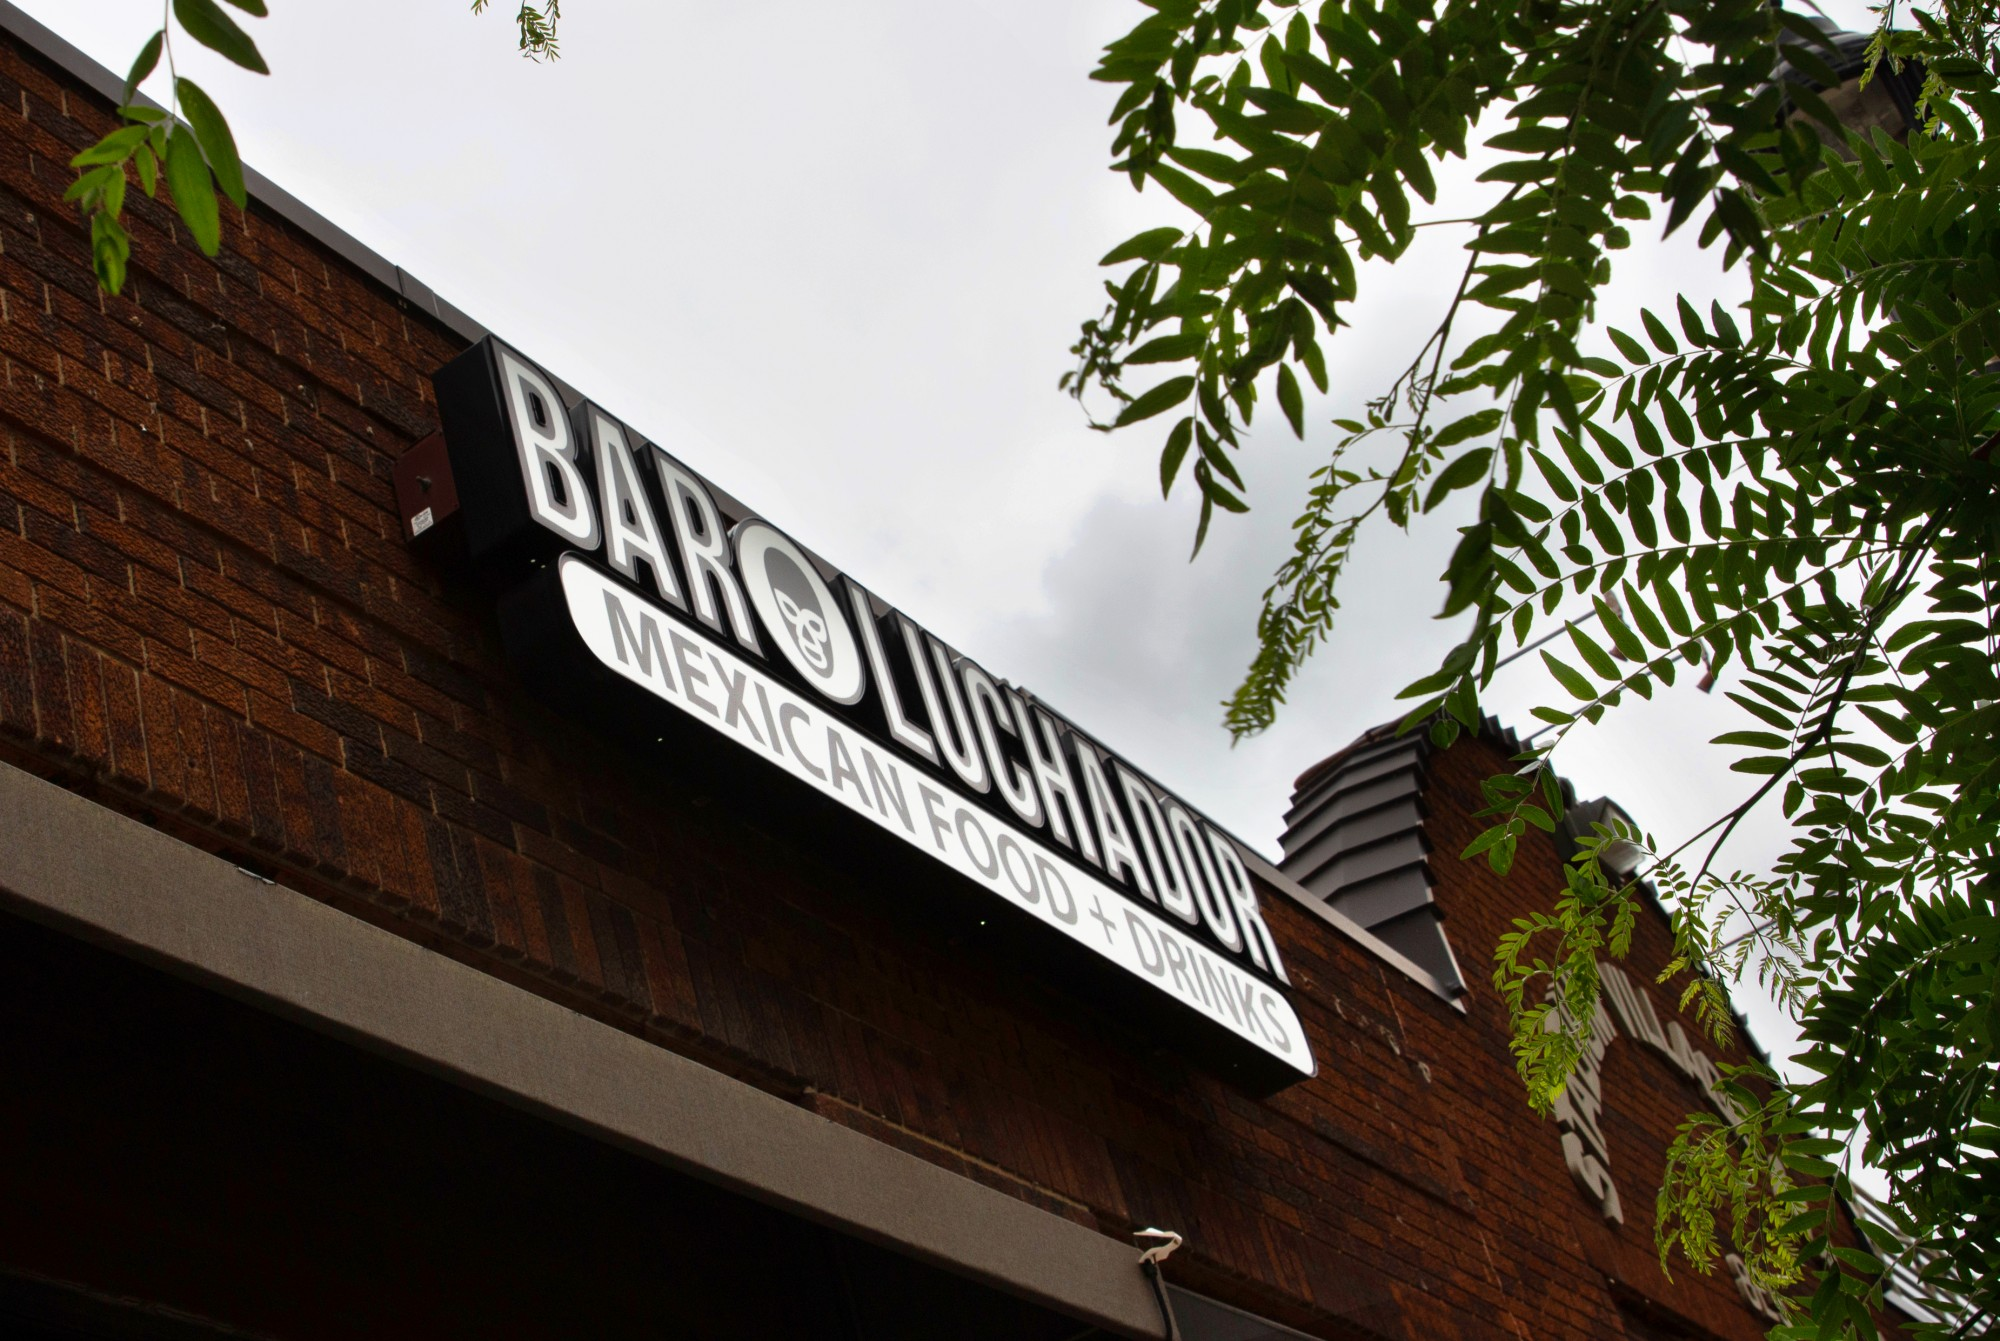 Bar Luchador sits closed on Washington Ave in Stadium Village on Friday, May 29. (Audrey Rauth / Minnesota Daily)